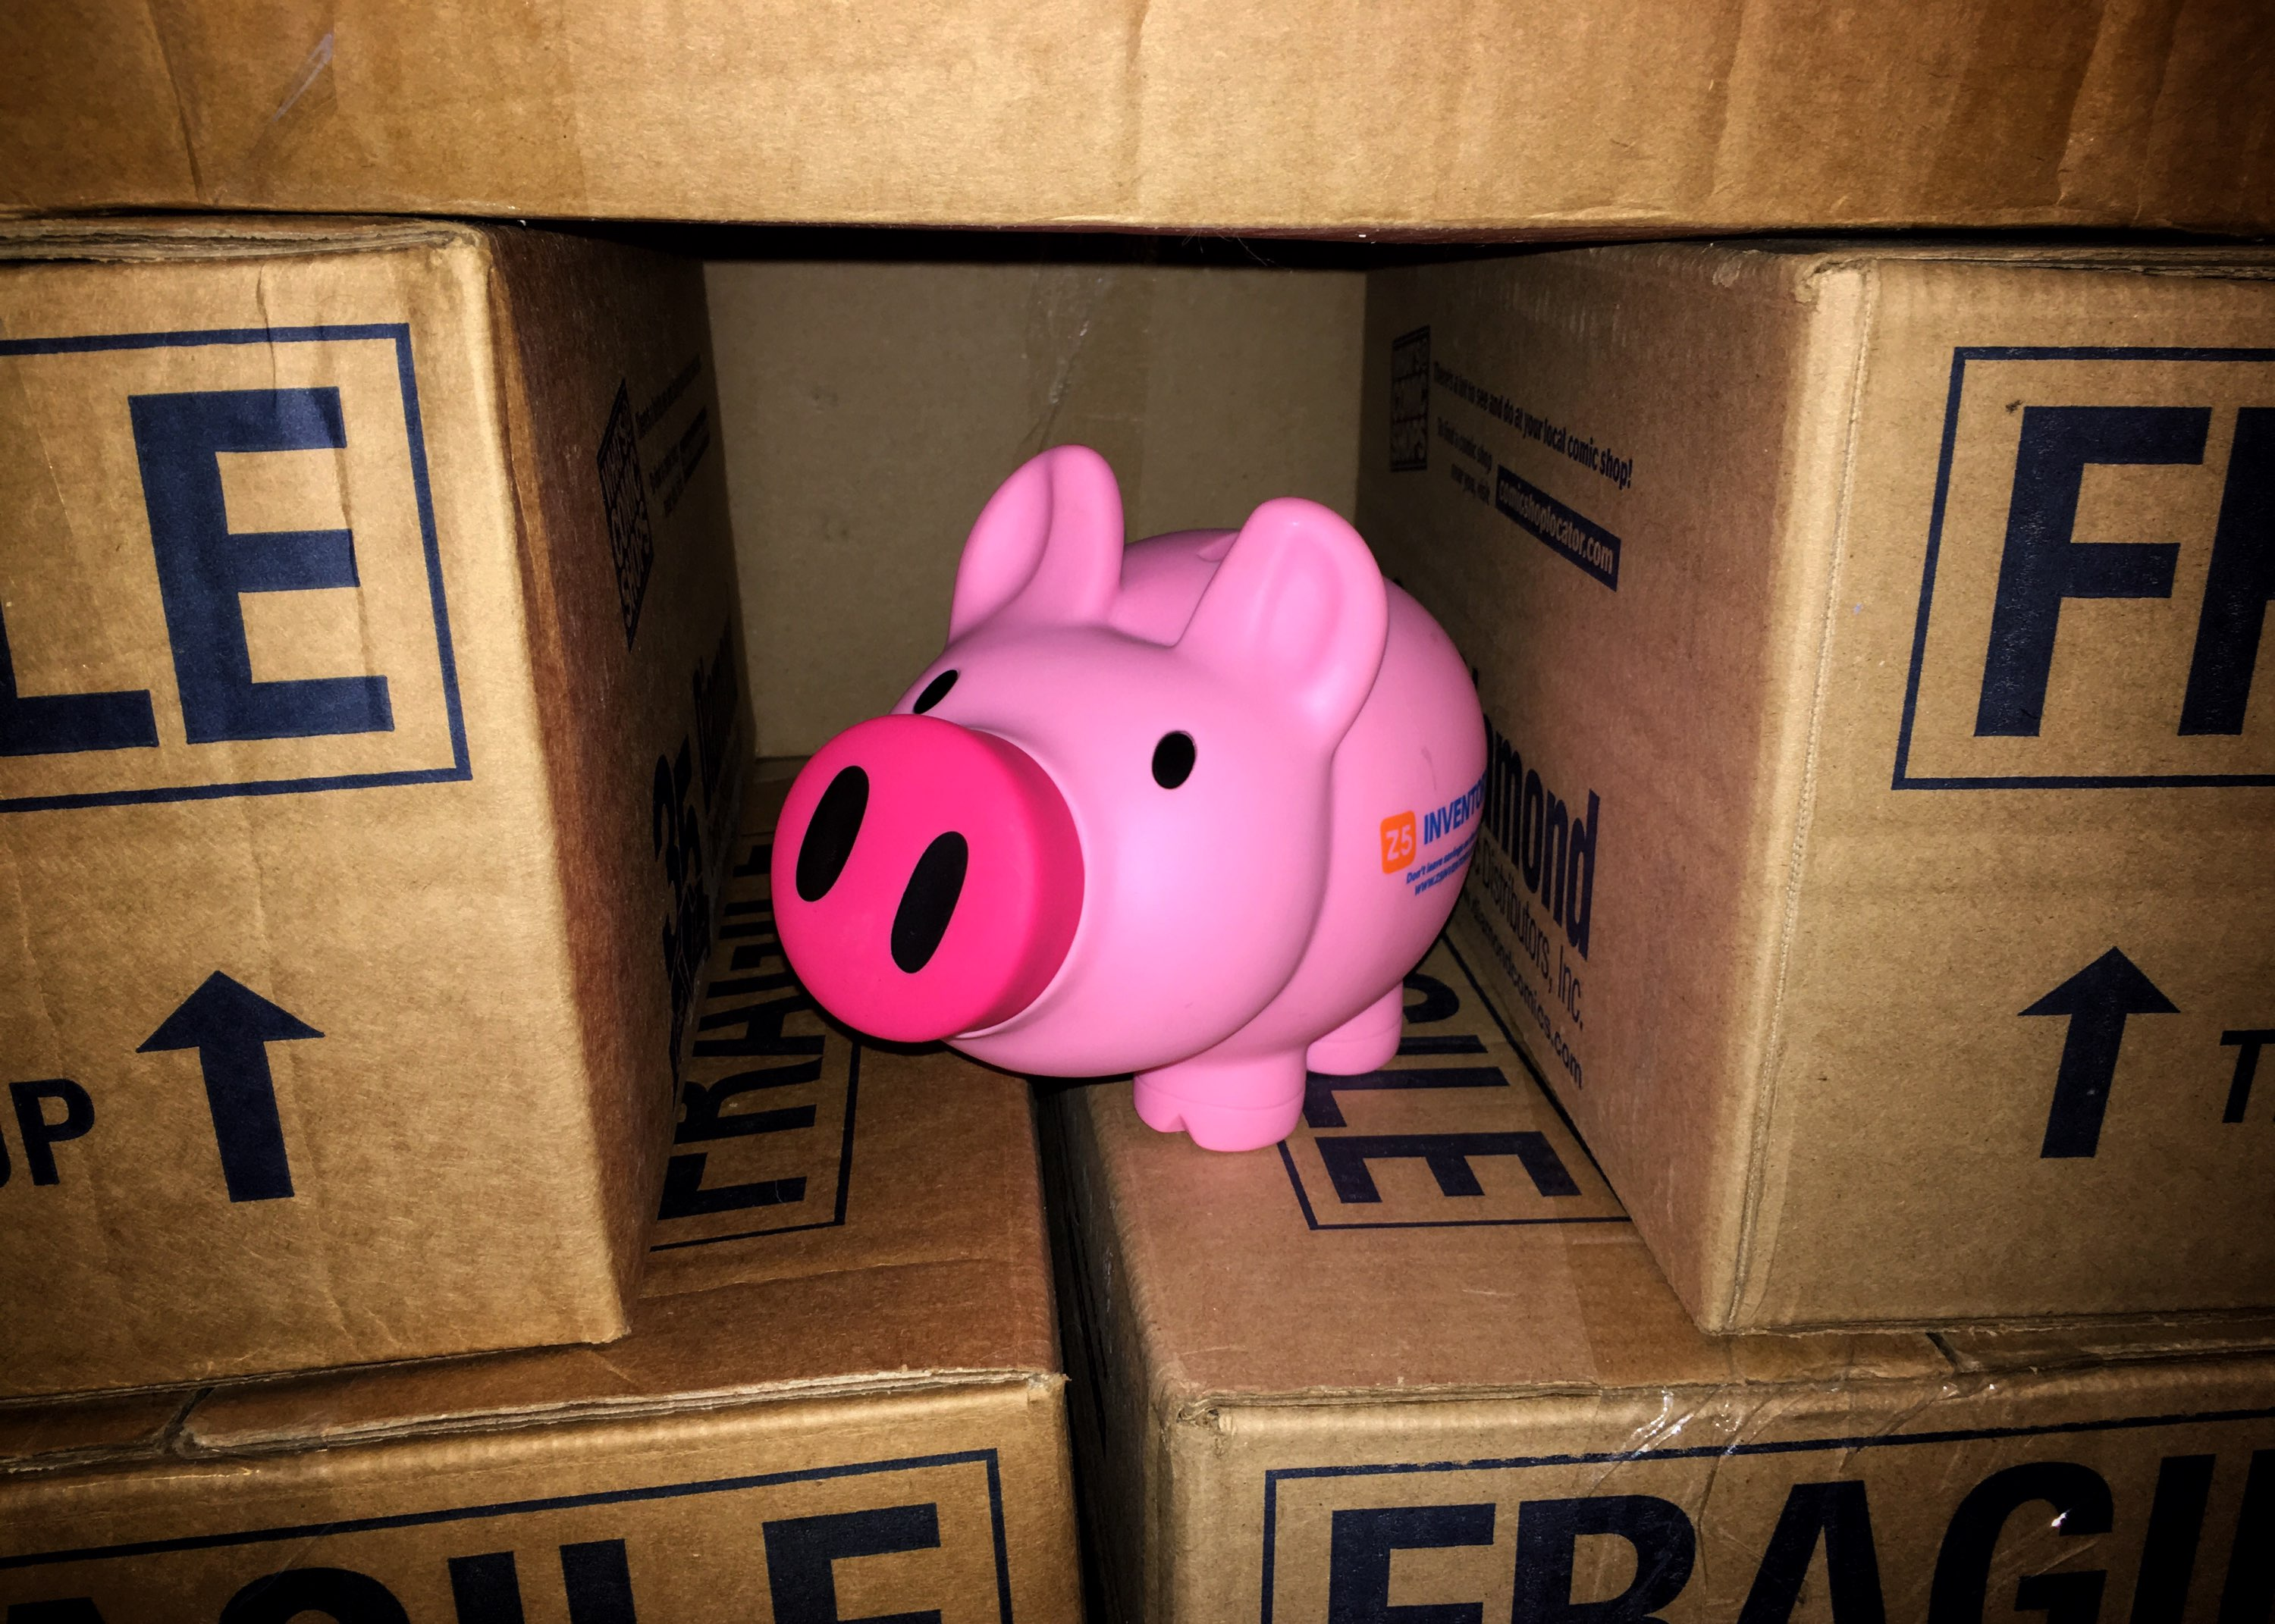 The Z5 piggy bank is surrounded by Amazon shipping boxes.